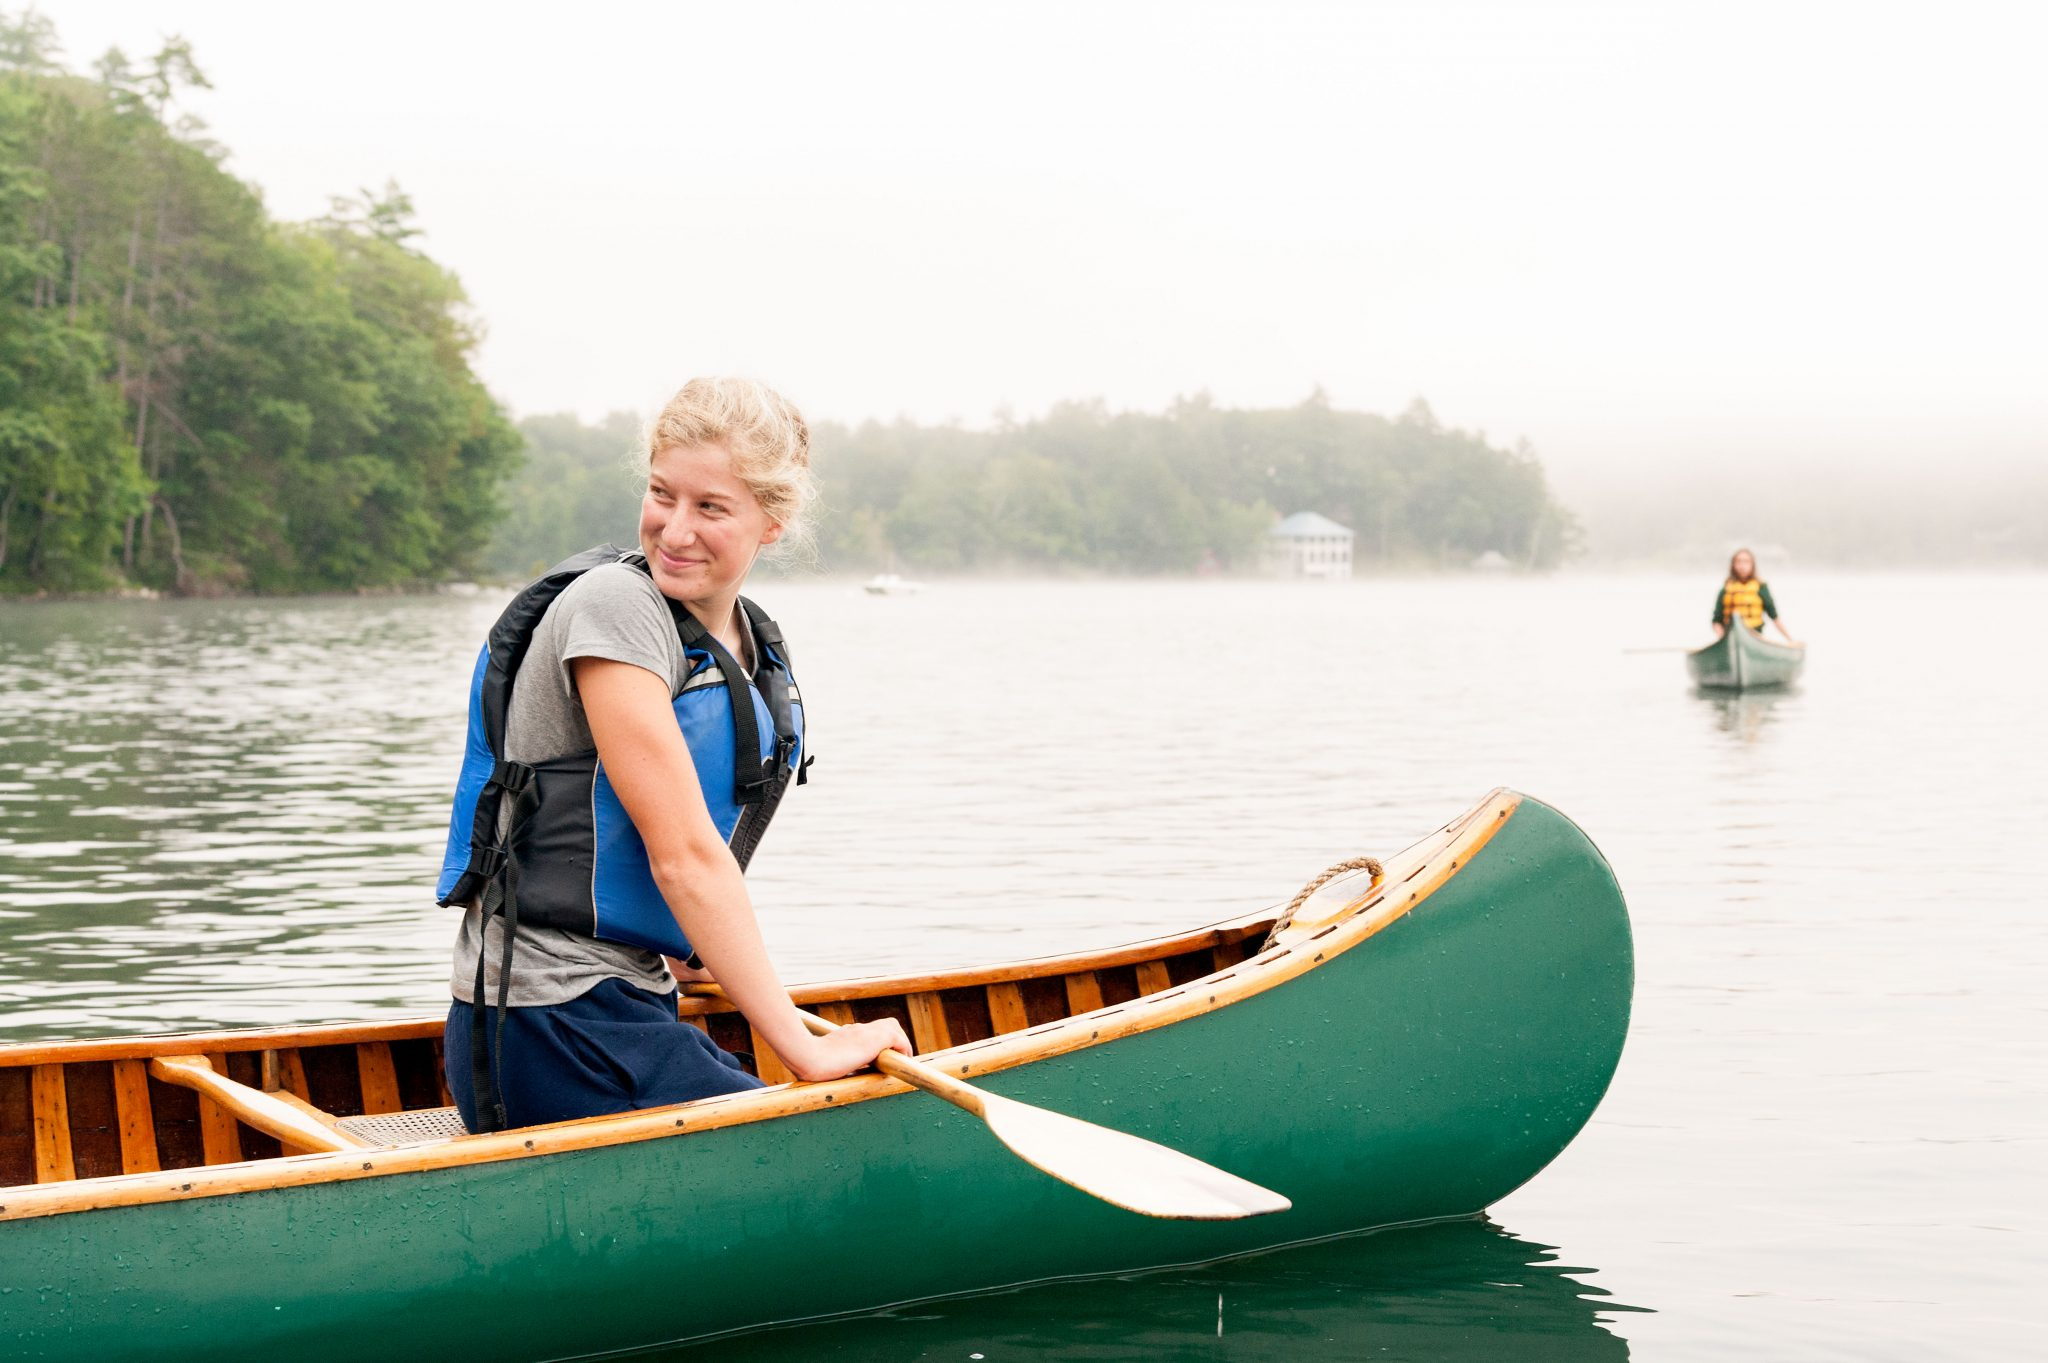 An Aloha camper smiling in a canoe on the lake.